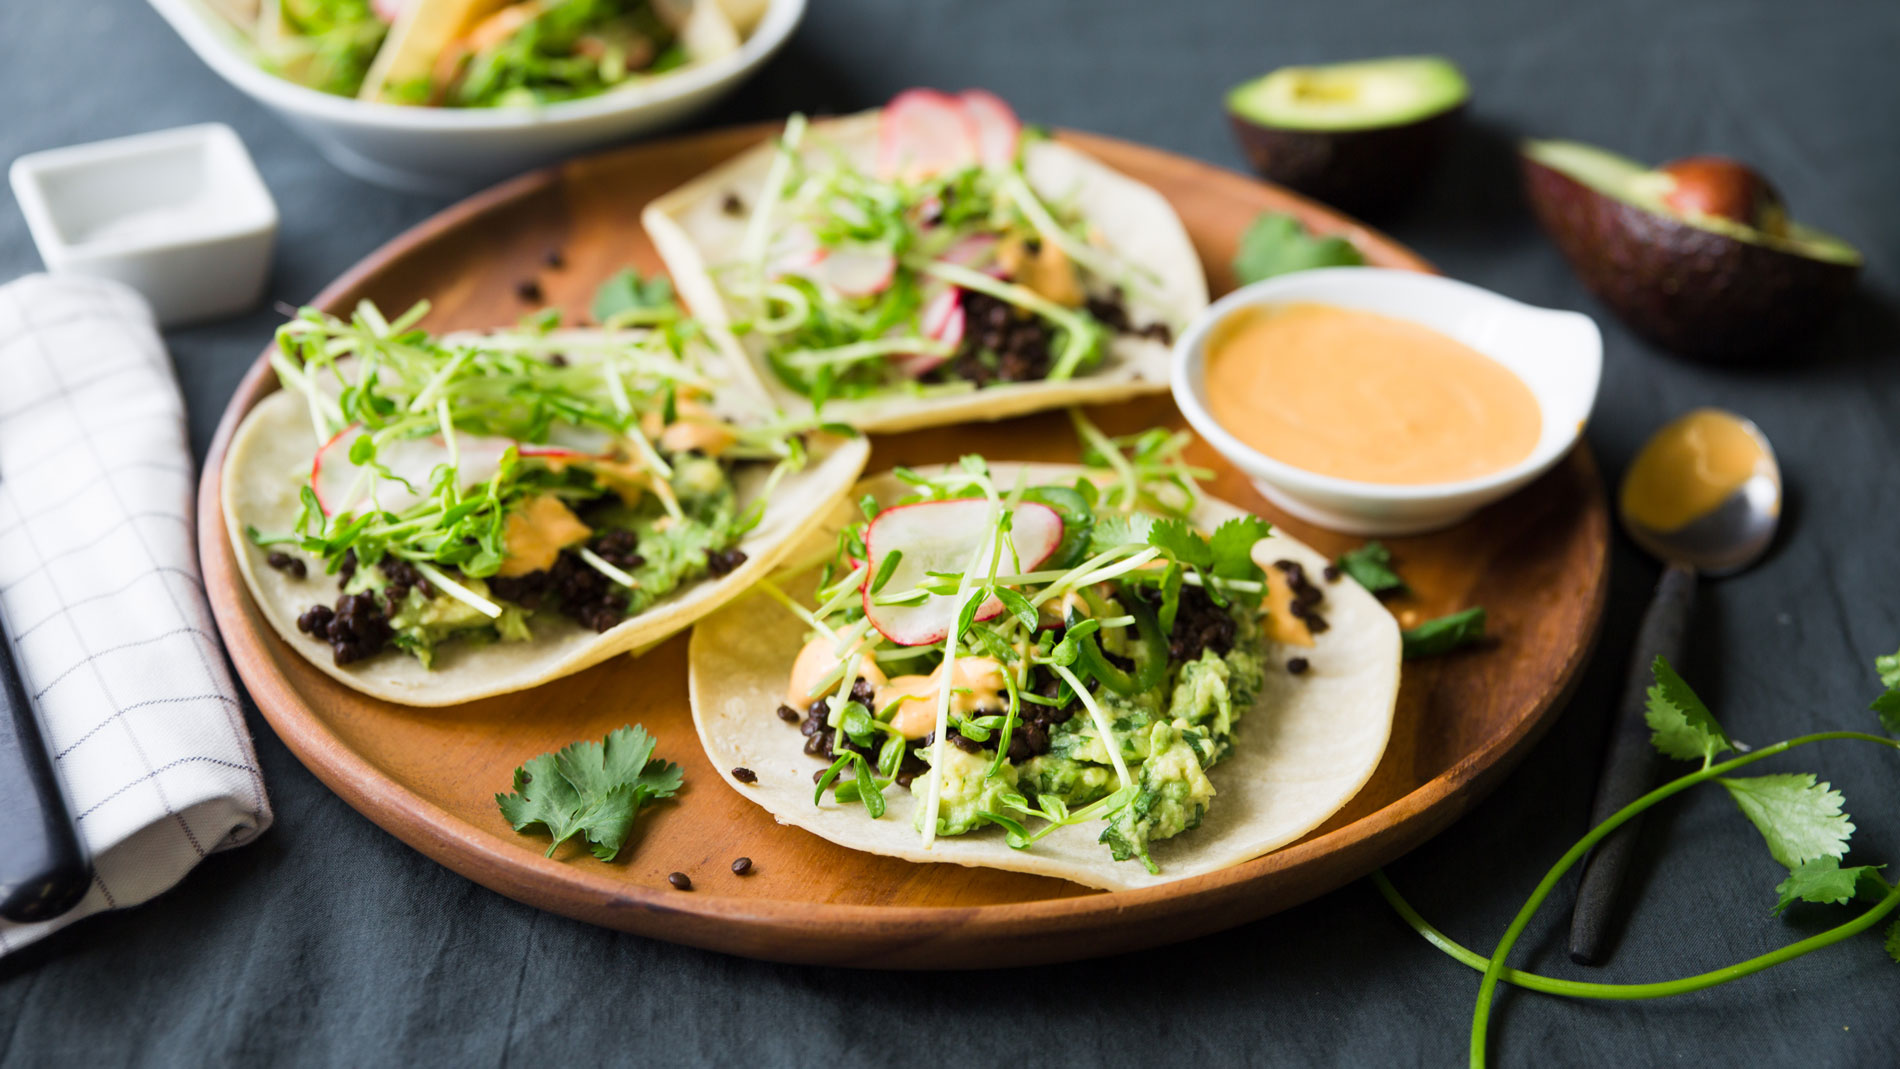 Beluga Lentil Tacos with Quick Guacamole & Spring Slaw